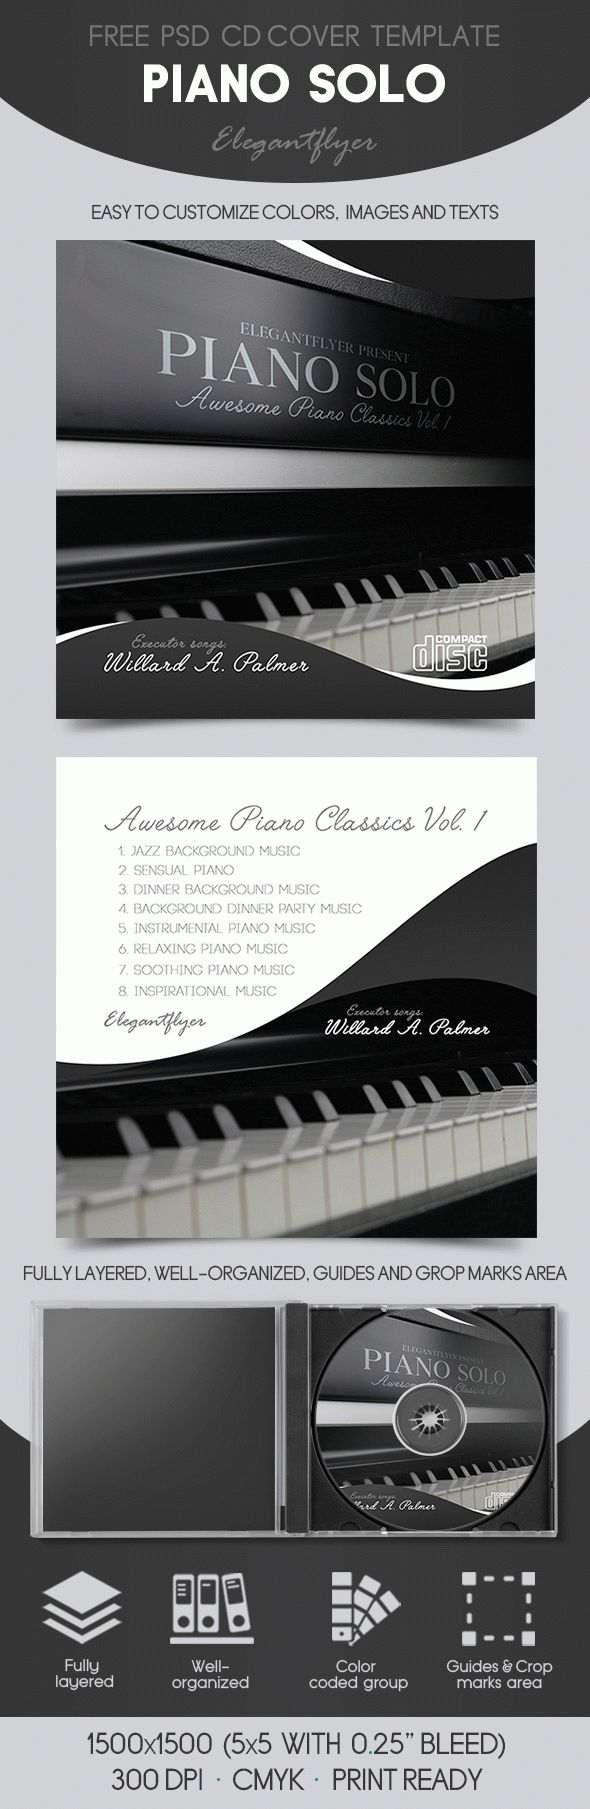 Piano Solo – Free CD Sleeve Template in PSD